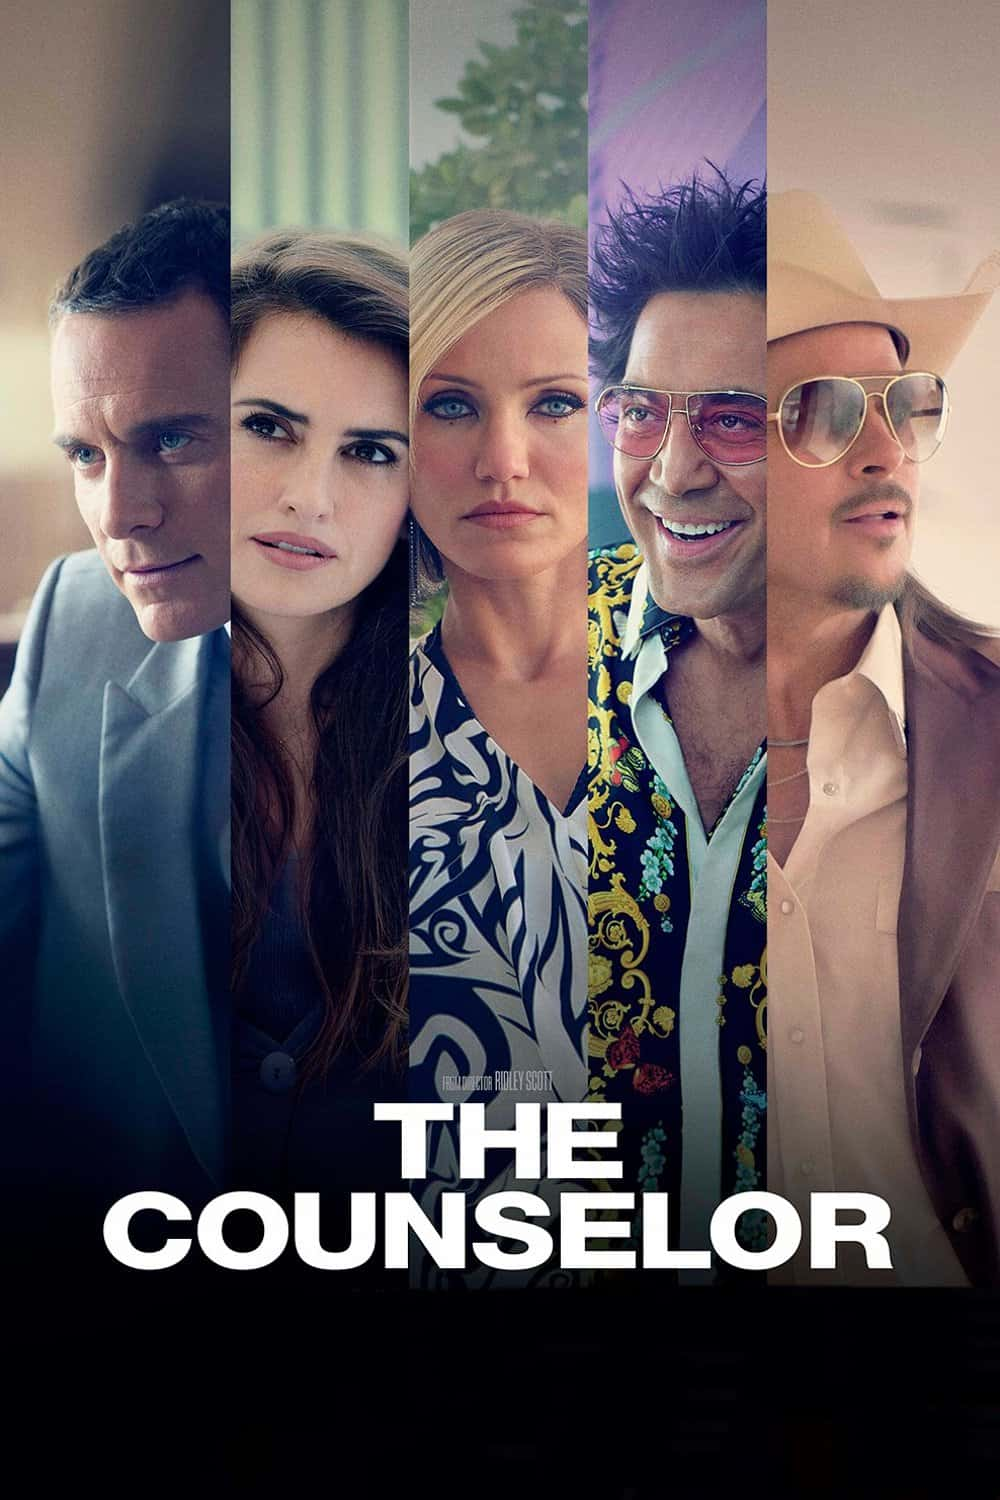 The Counselor, 2013